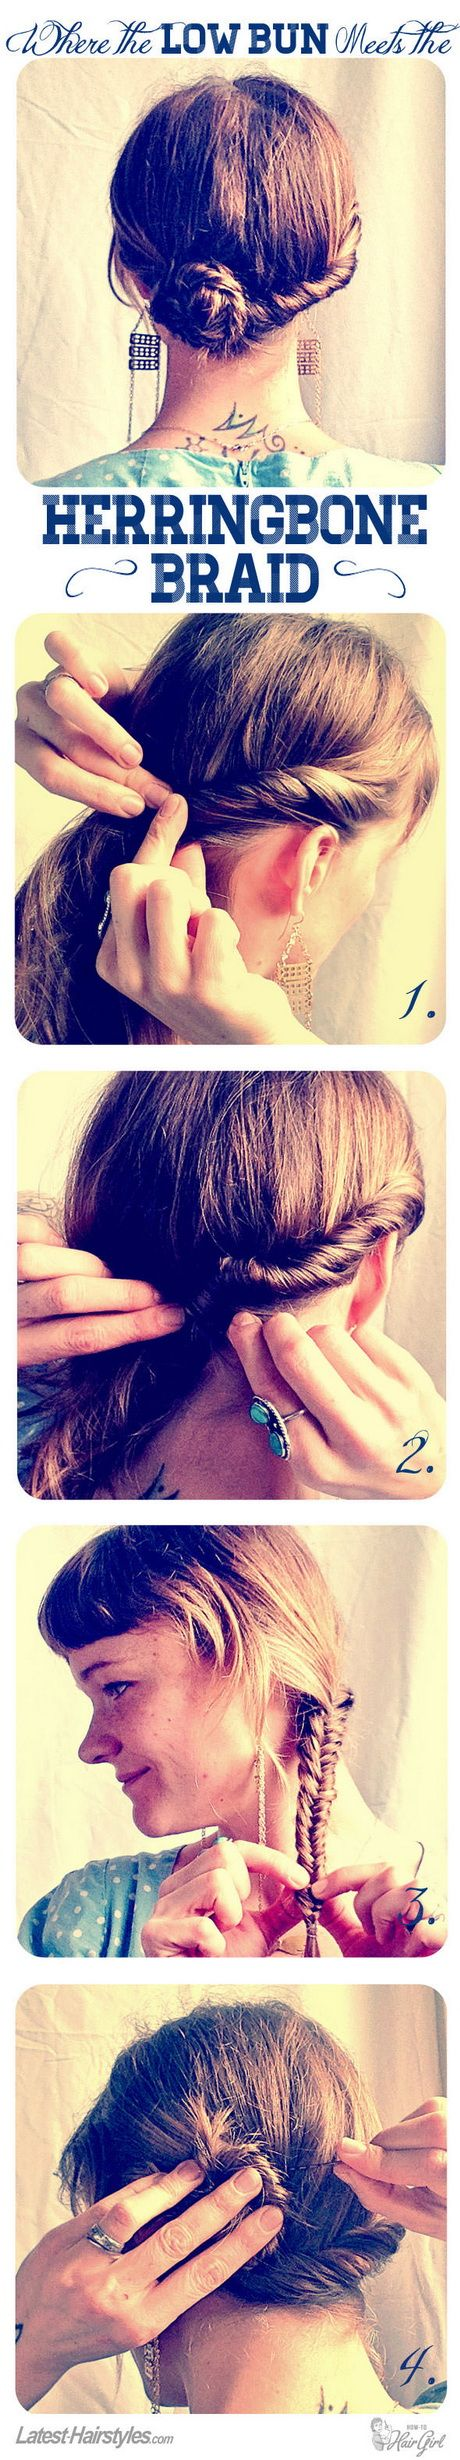 Easy hair tutorials - Herringbone braid